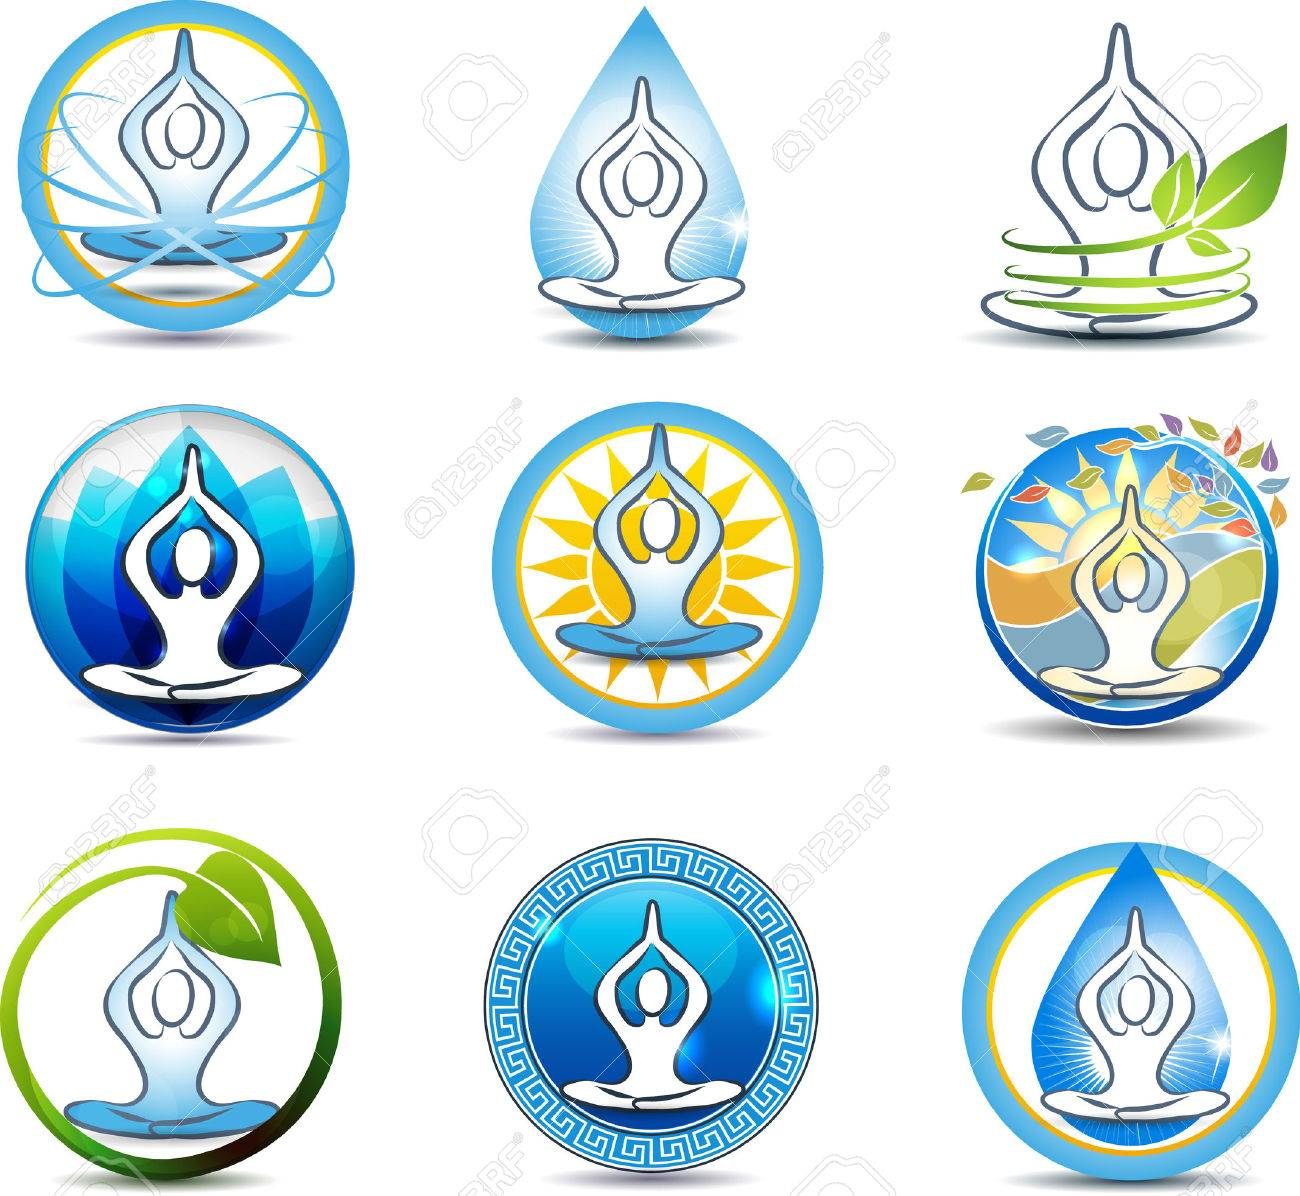 Beautiful Yoga Relaxation Symbols Nature Involved In Human Royalty Free Cliparts Vectors And Stock Illustration Image 23074649